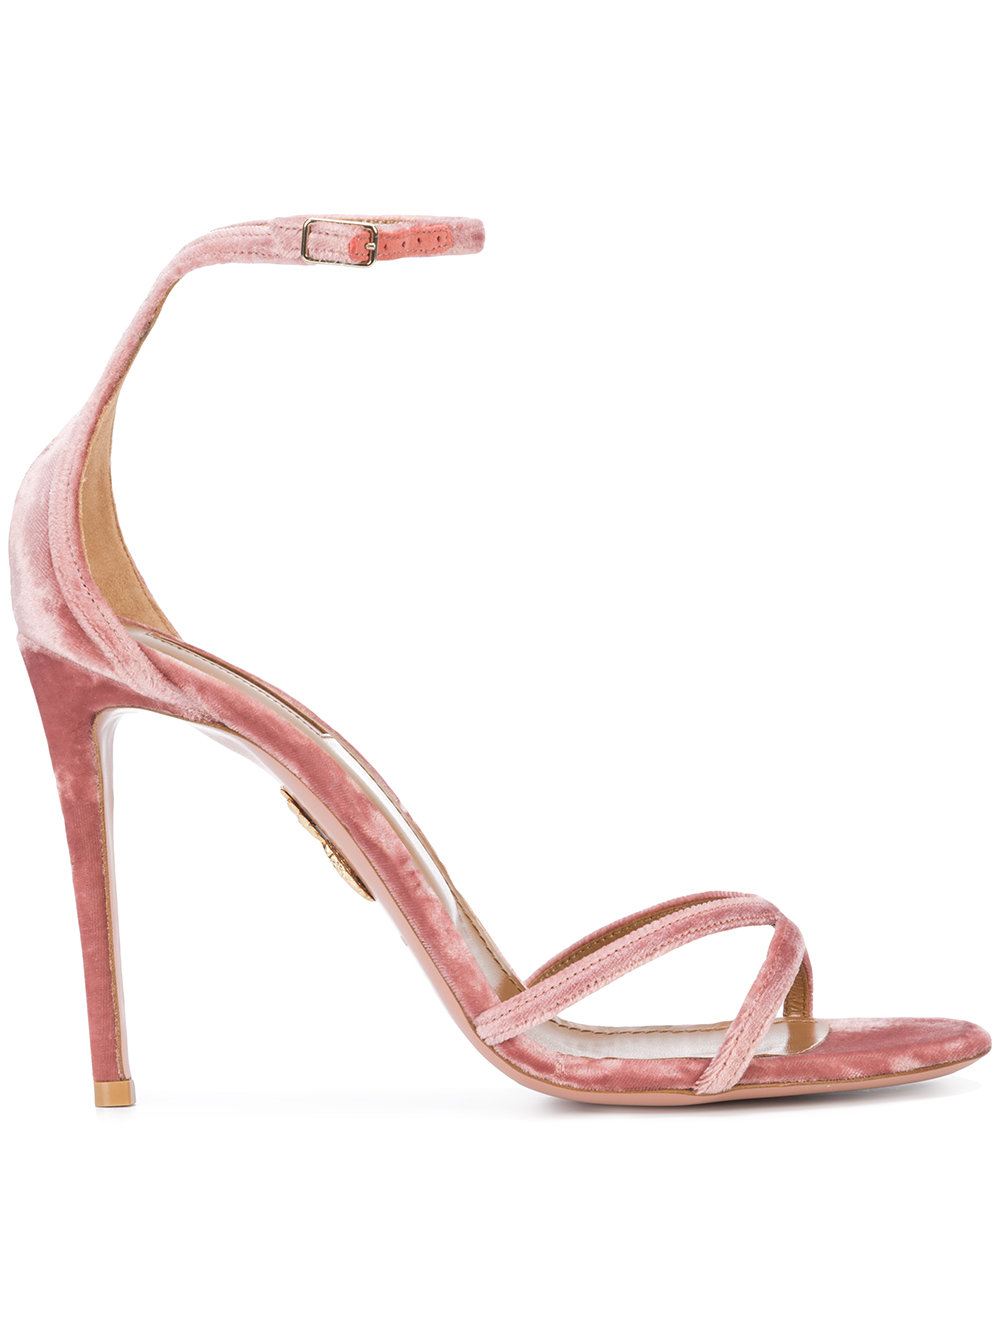 AQUAZZURA sandals - $695